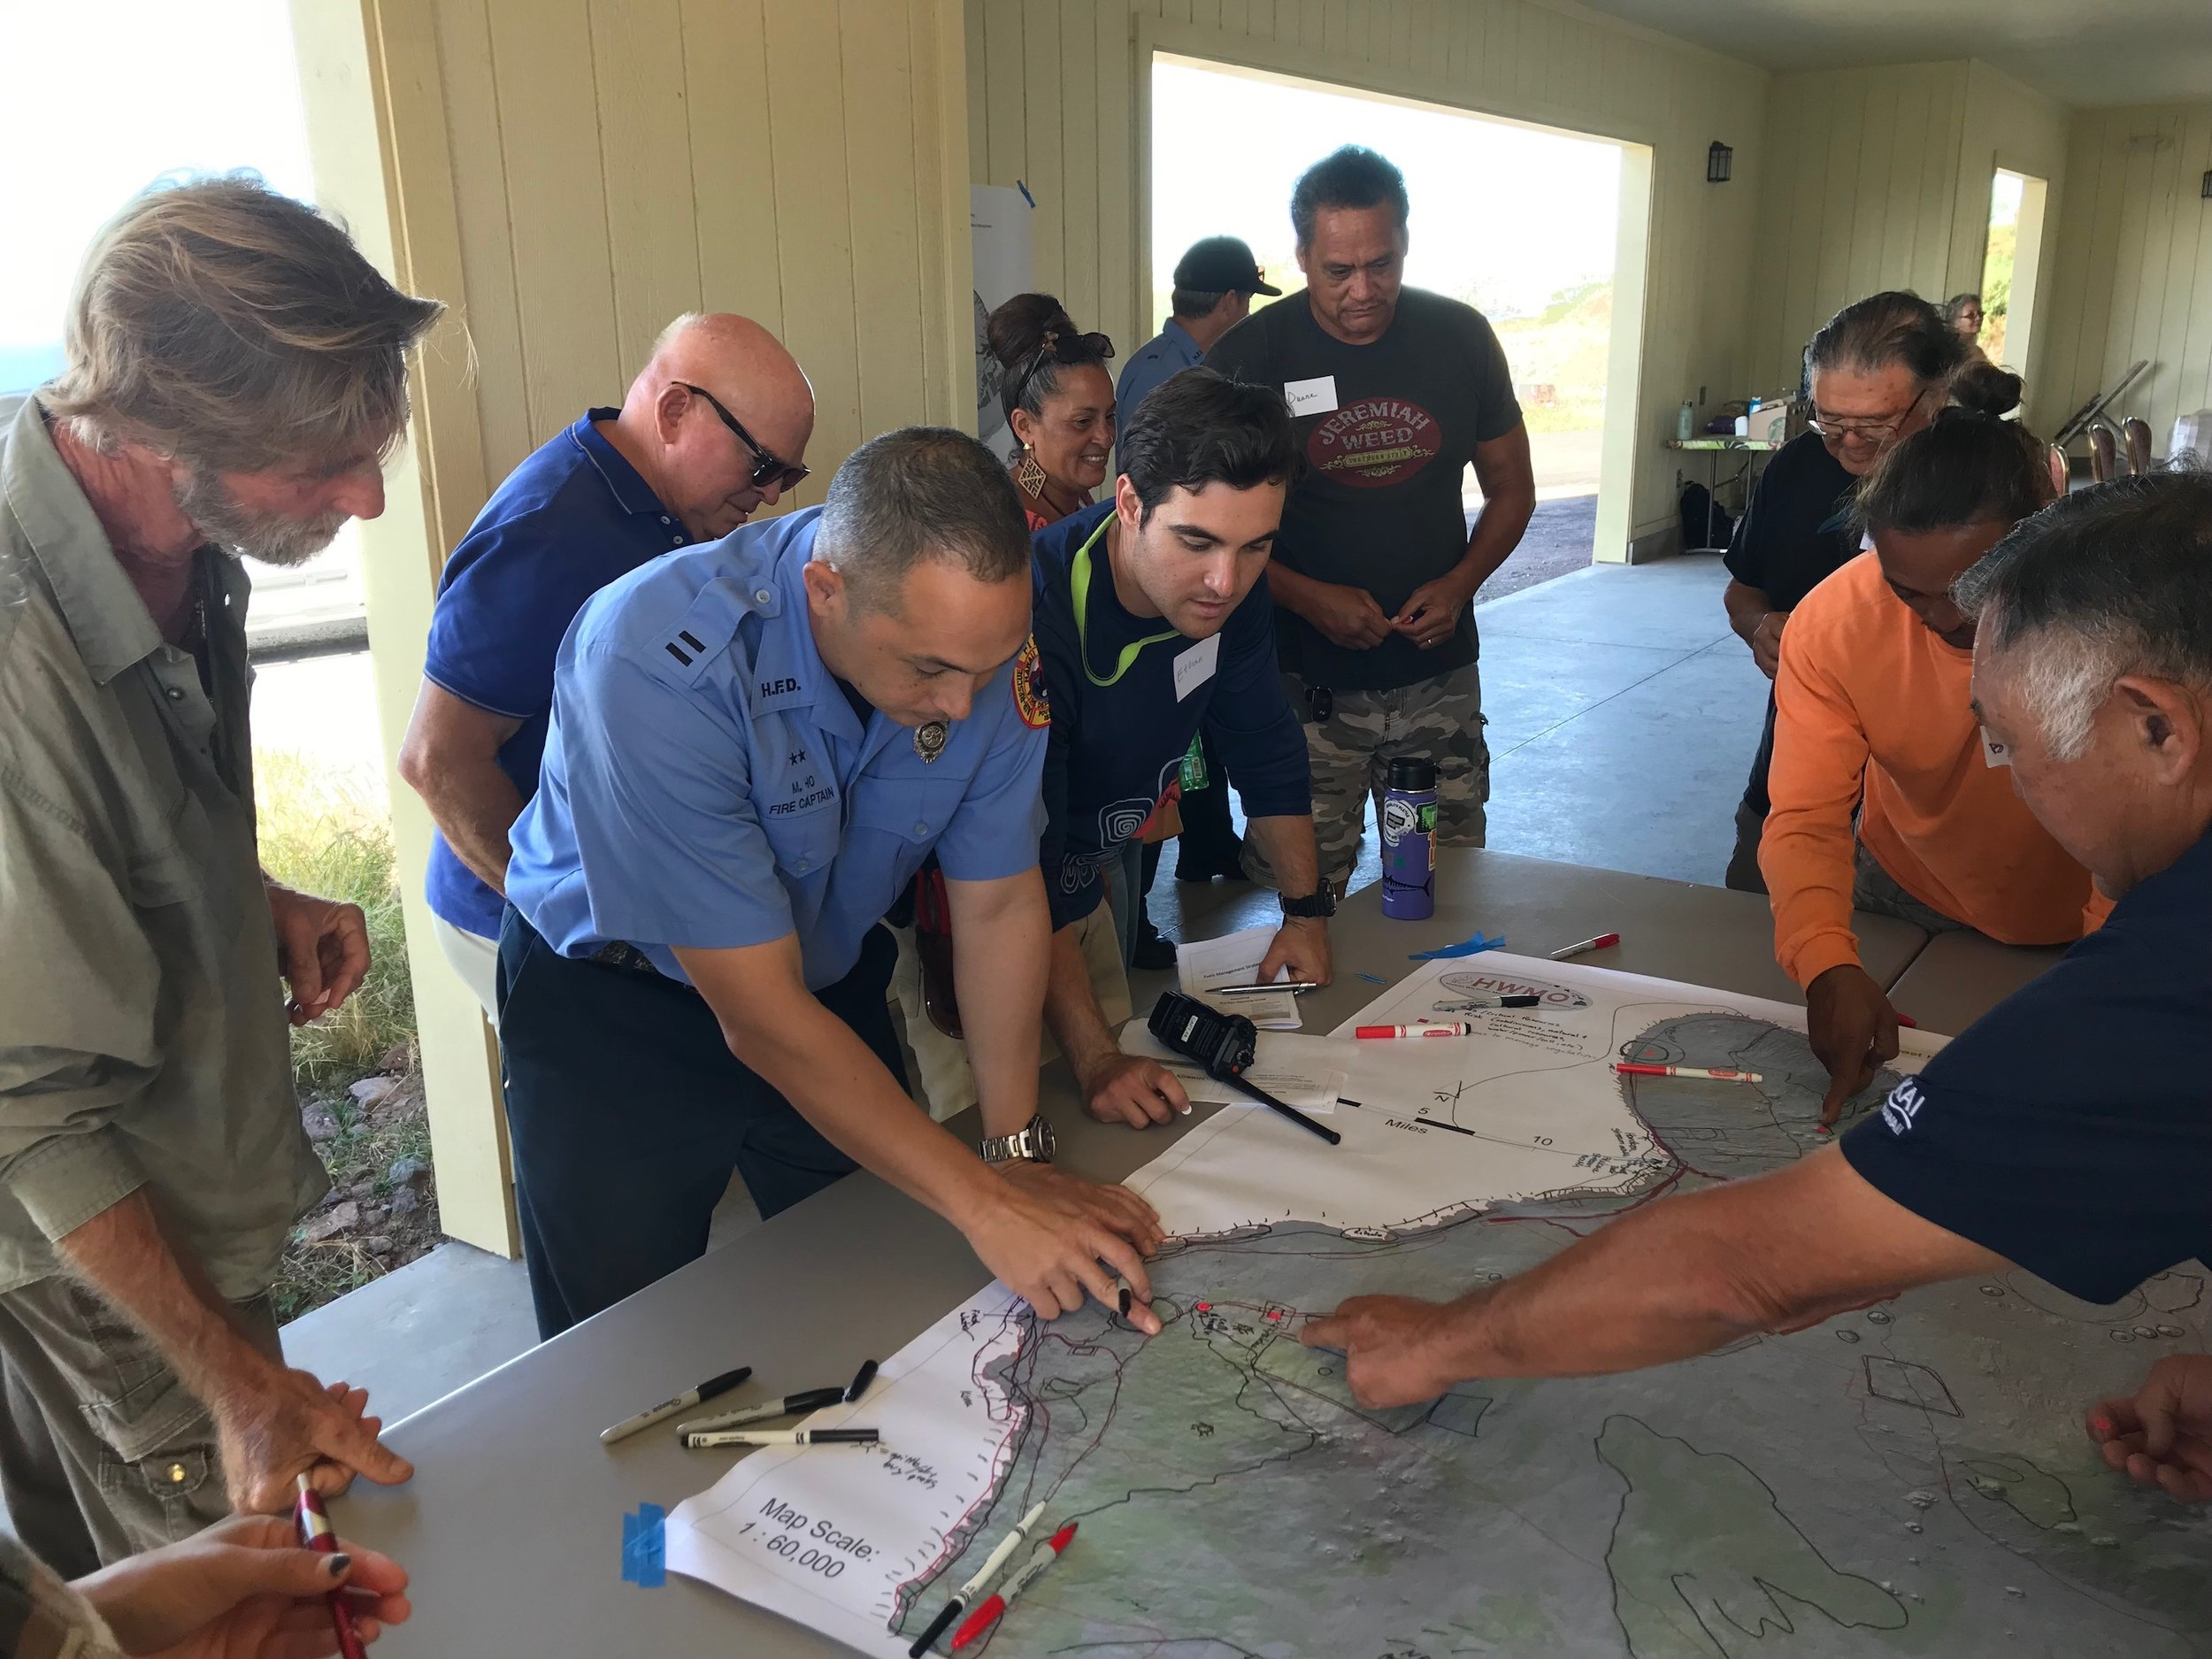 Hawaii Island Kailapa Vegetative Fuels Management Collaborative Action Planning Workshop_2_26_2019_49.jpg